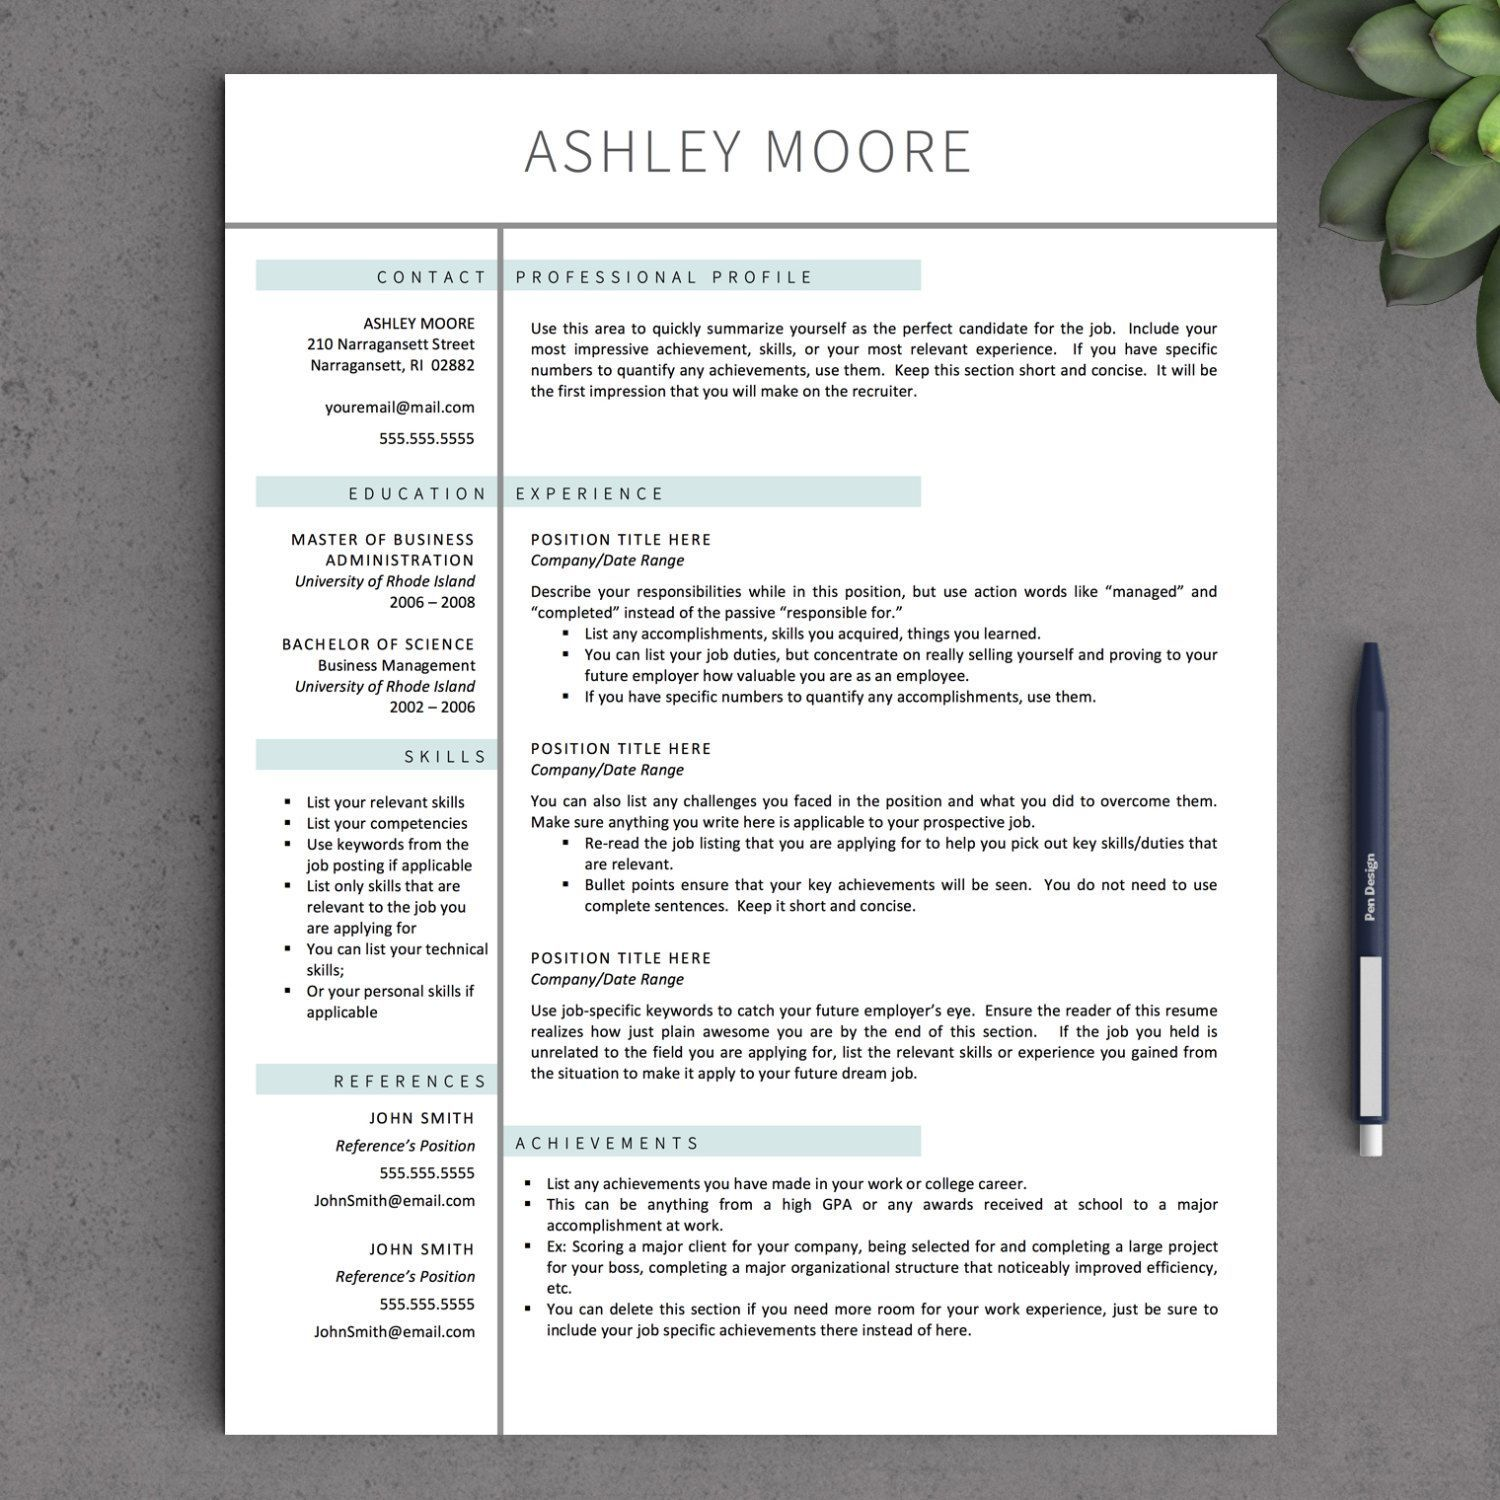 Resume Templates Apple Pages Apple Pages Resume Resumetemplates Templates Resume Template Professional Downloadable Resume Template Resume Templates